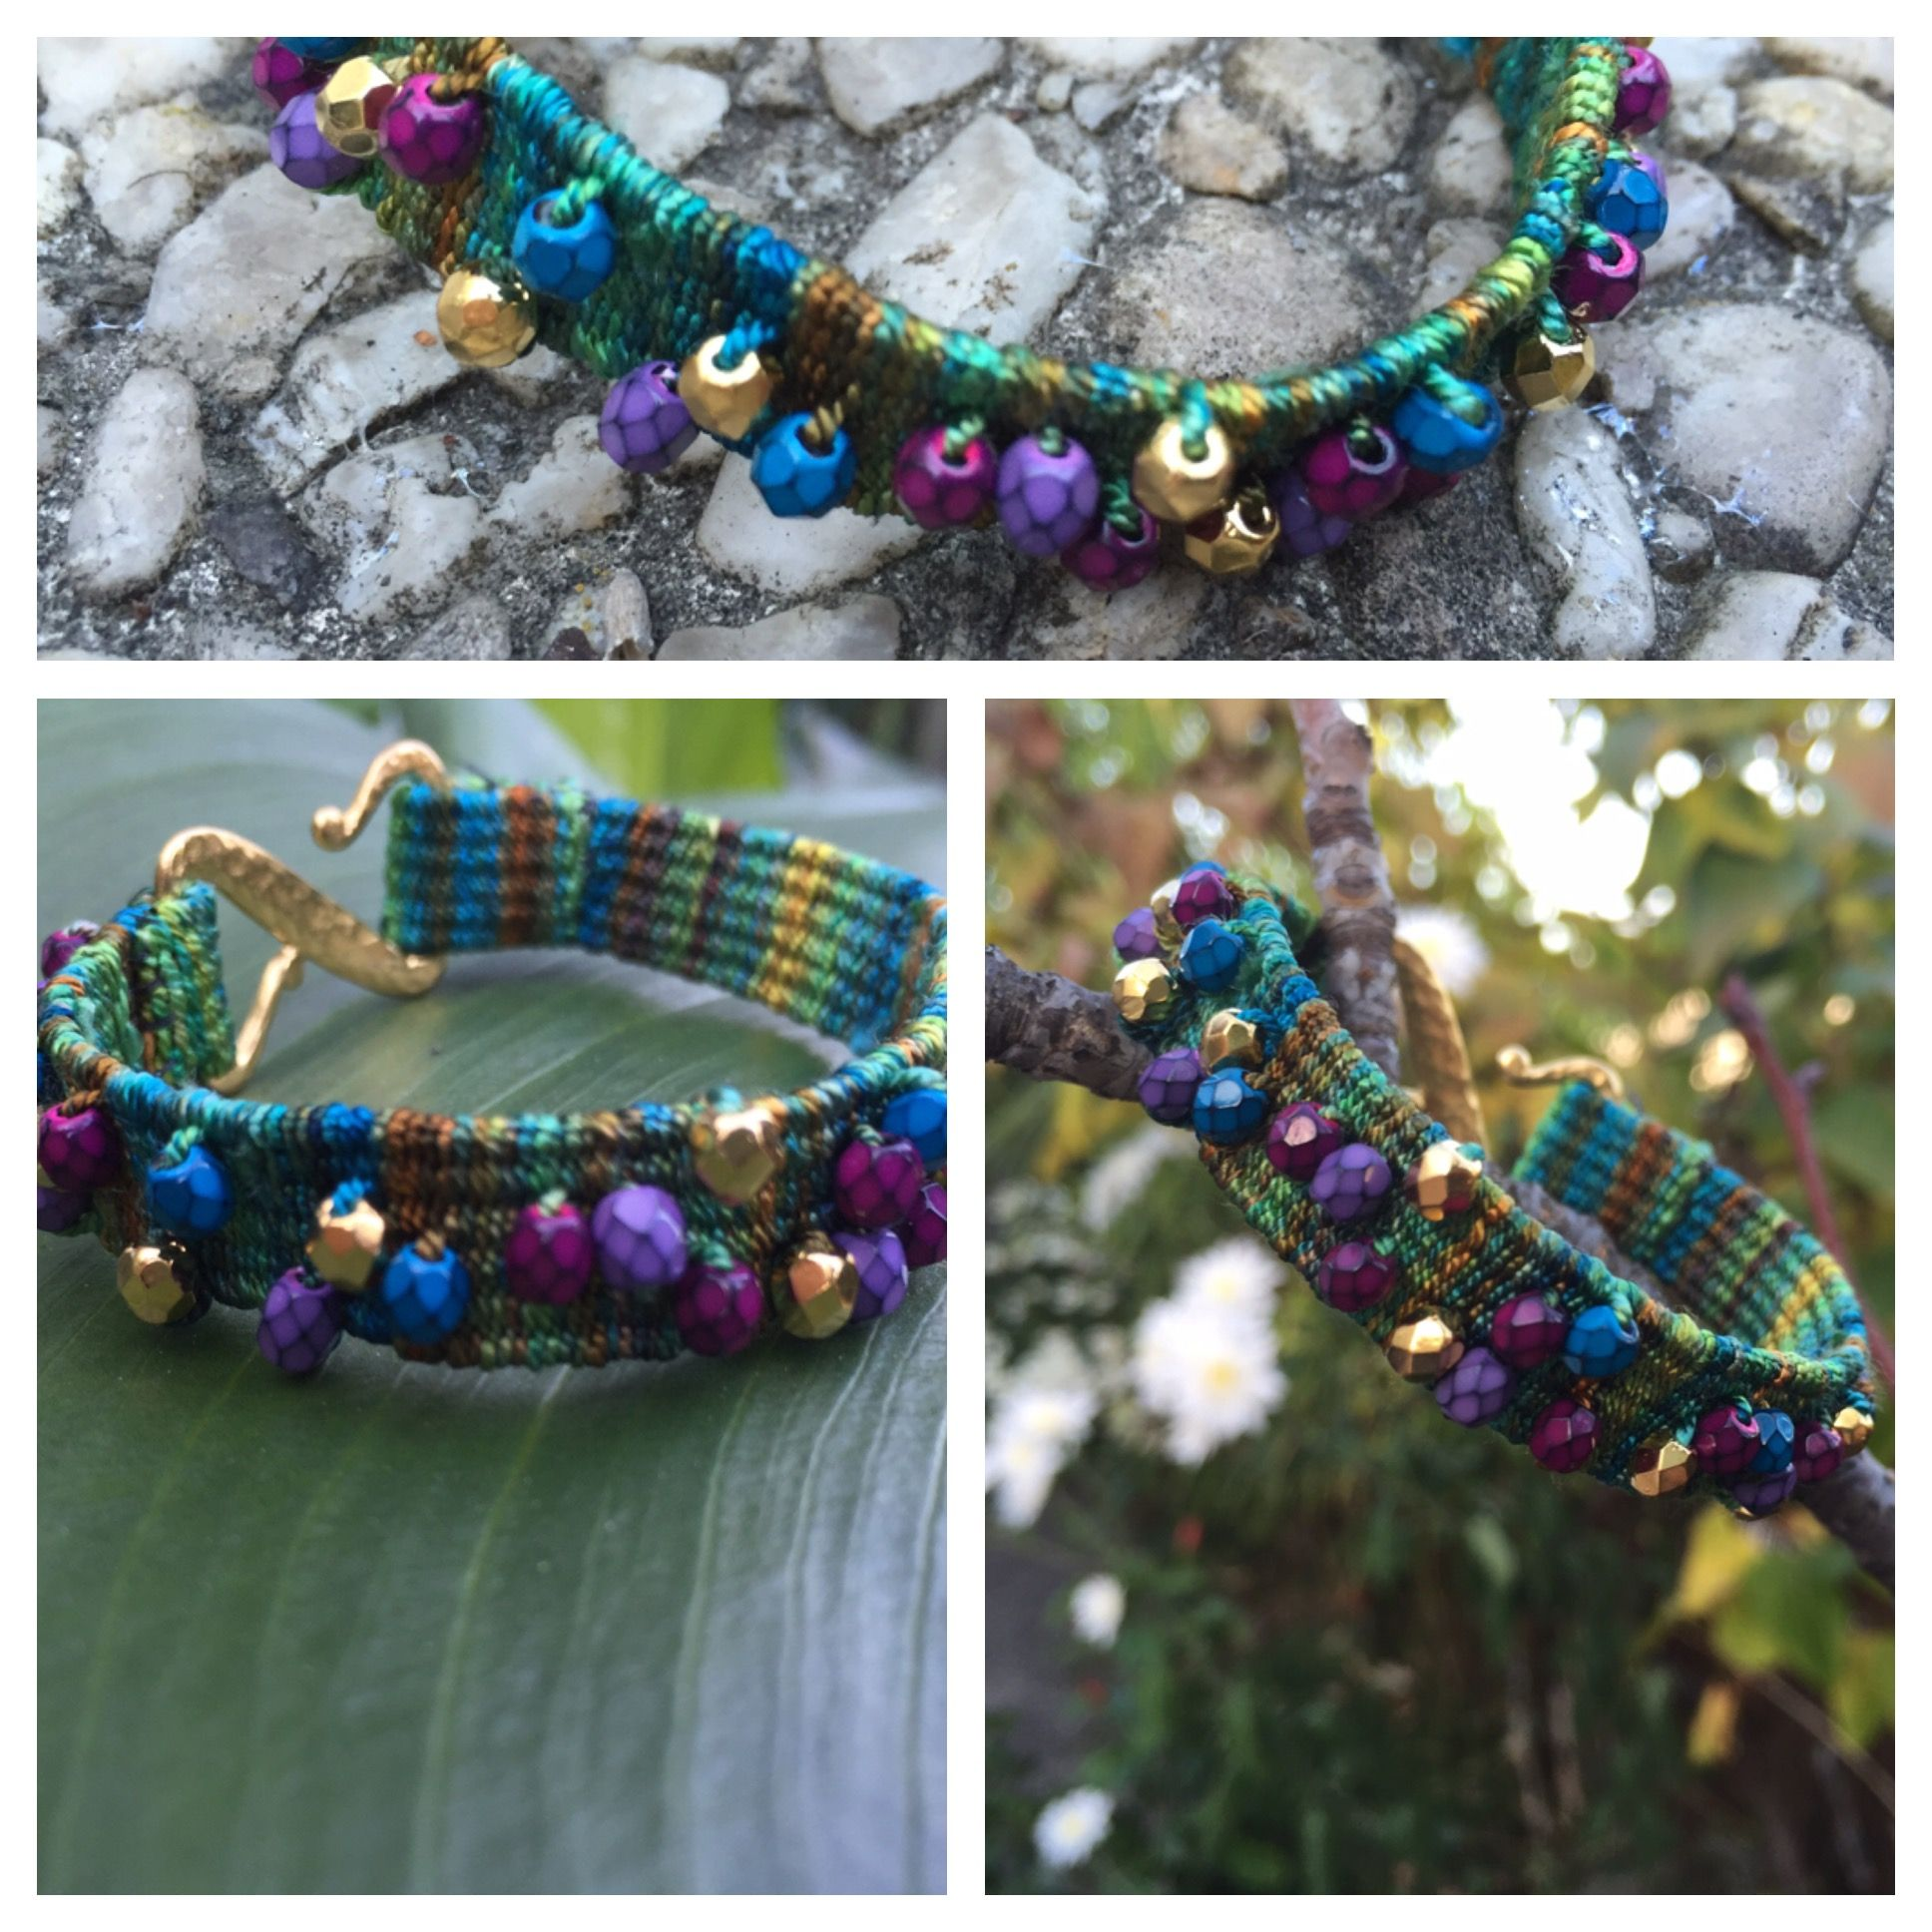 You can now get our 20th weave-along project for free as an ebook! Called the Bauble Bracelet, this project is perfect for beginners.